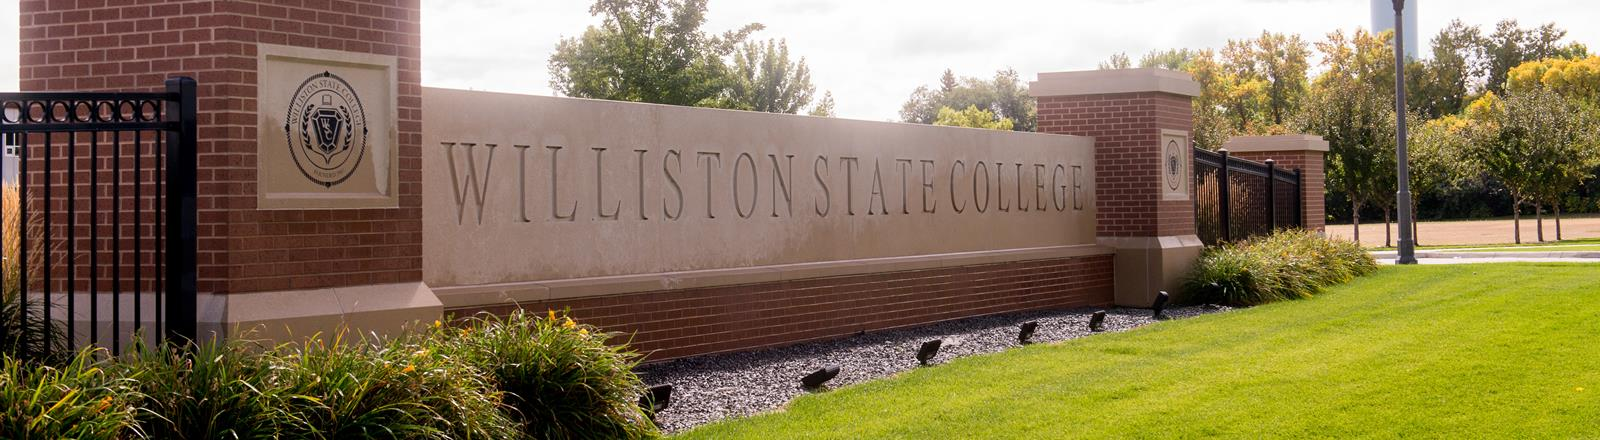 About Williston State College - Welcome